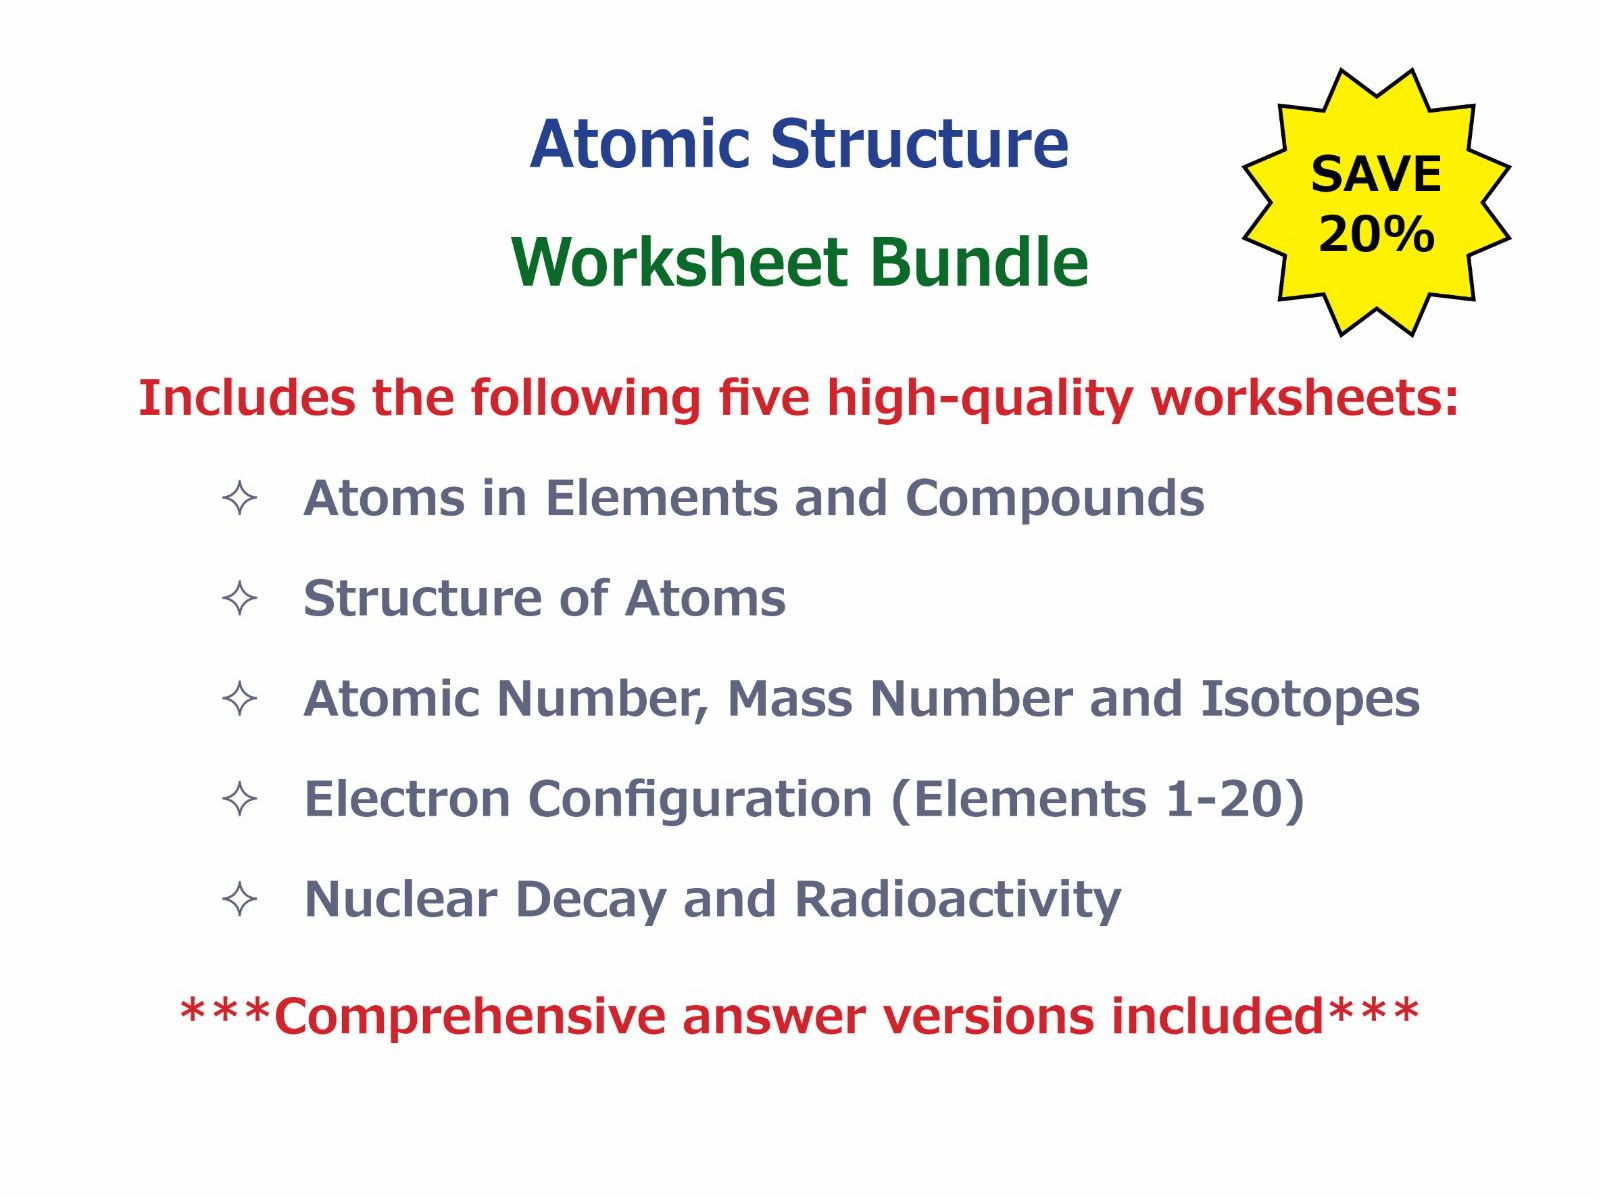 Worksheets Atomic Number Worksheet atomic number mass and isotopes worksheet by goodscienceworksheets teaching resources tes